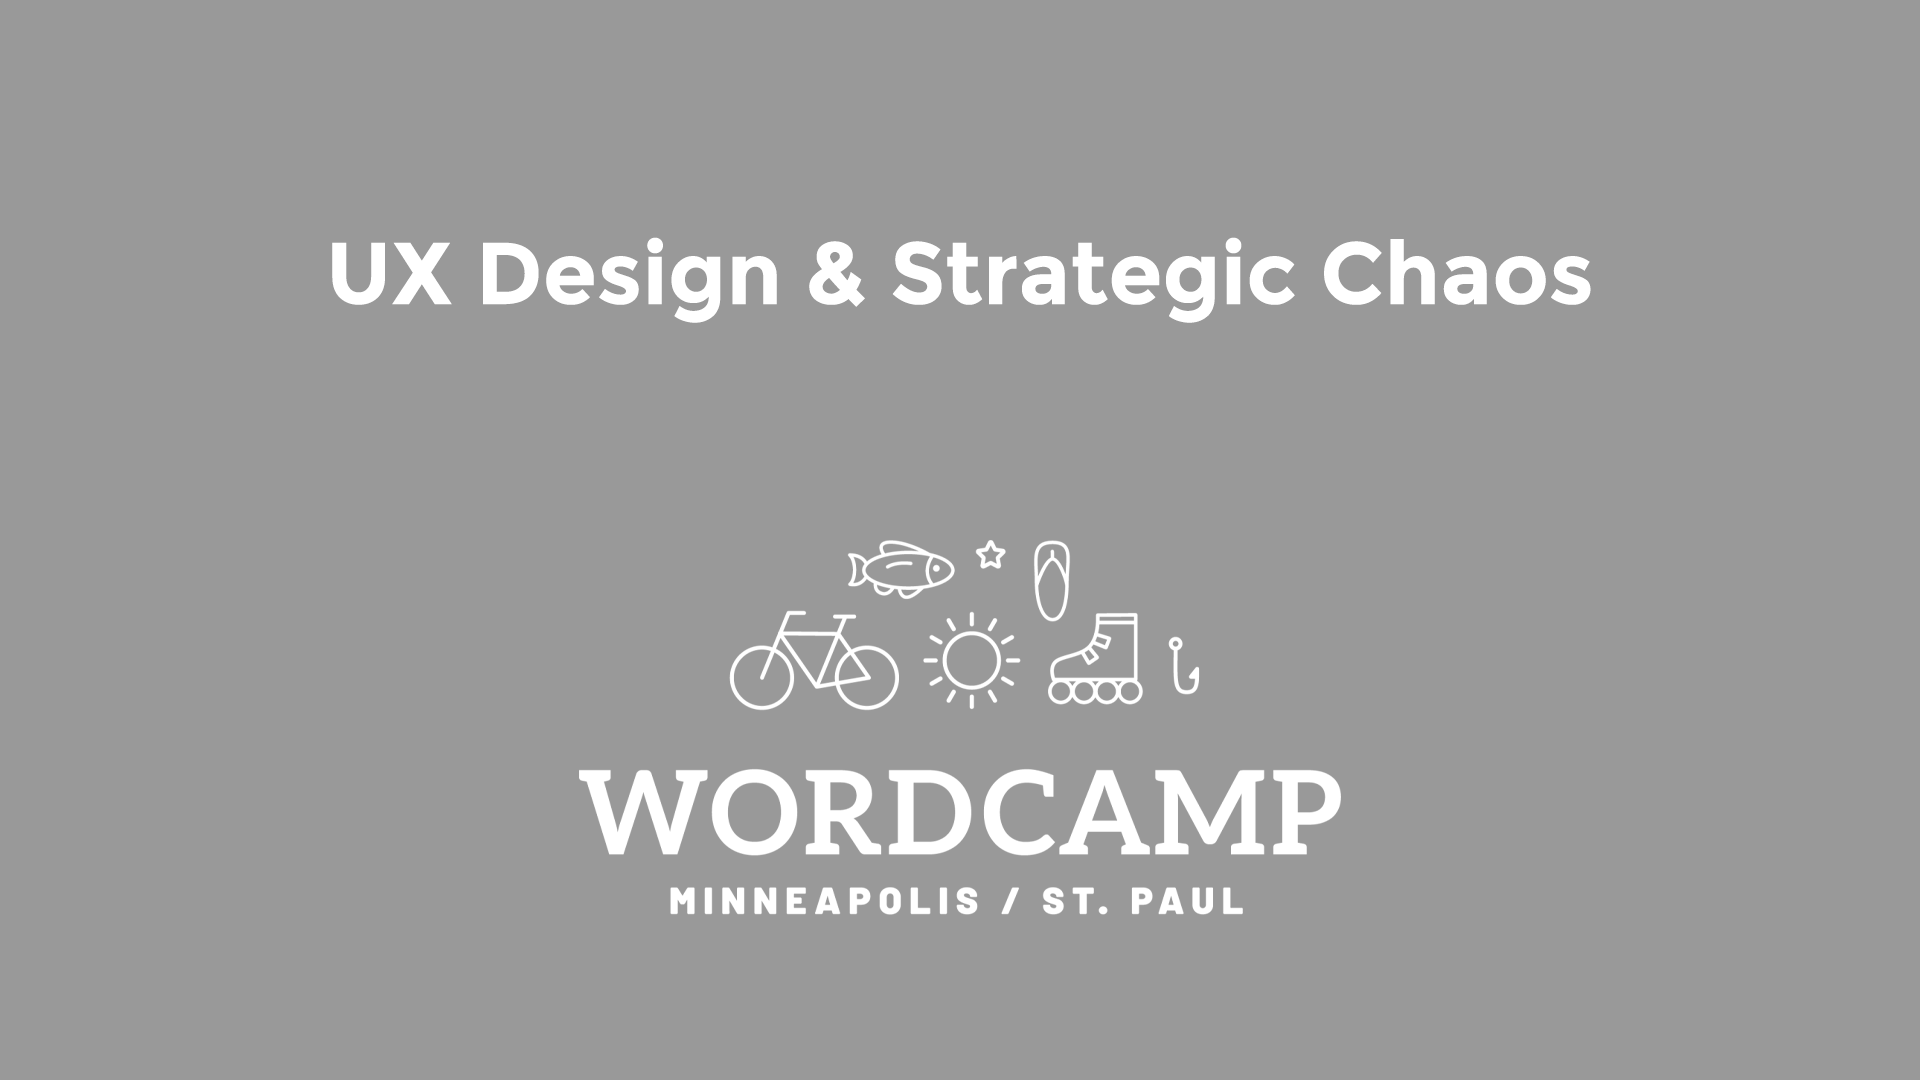 UX Design & Strategic Chaos Featured Image